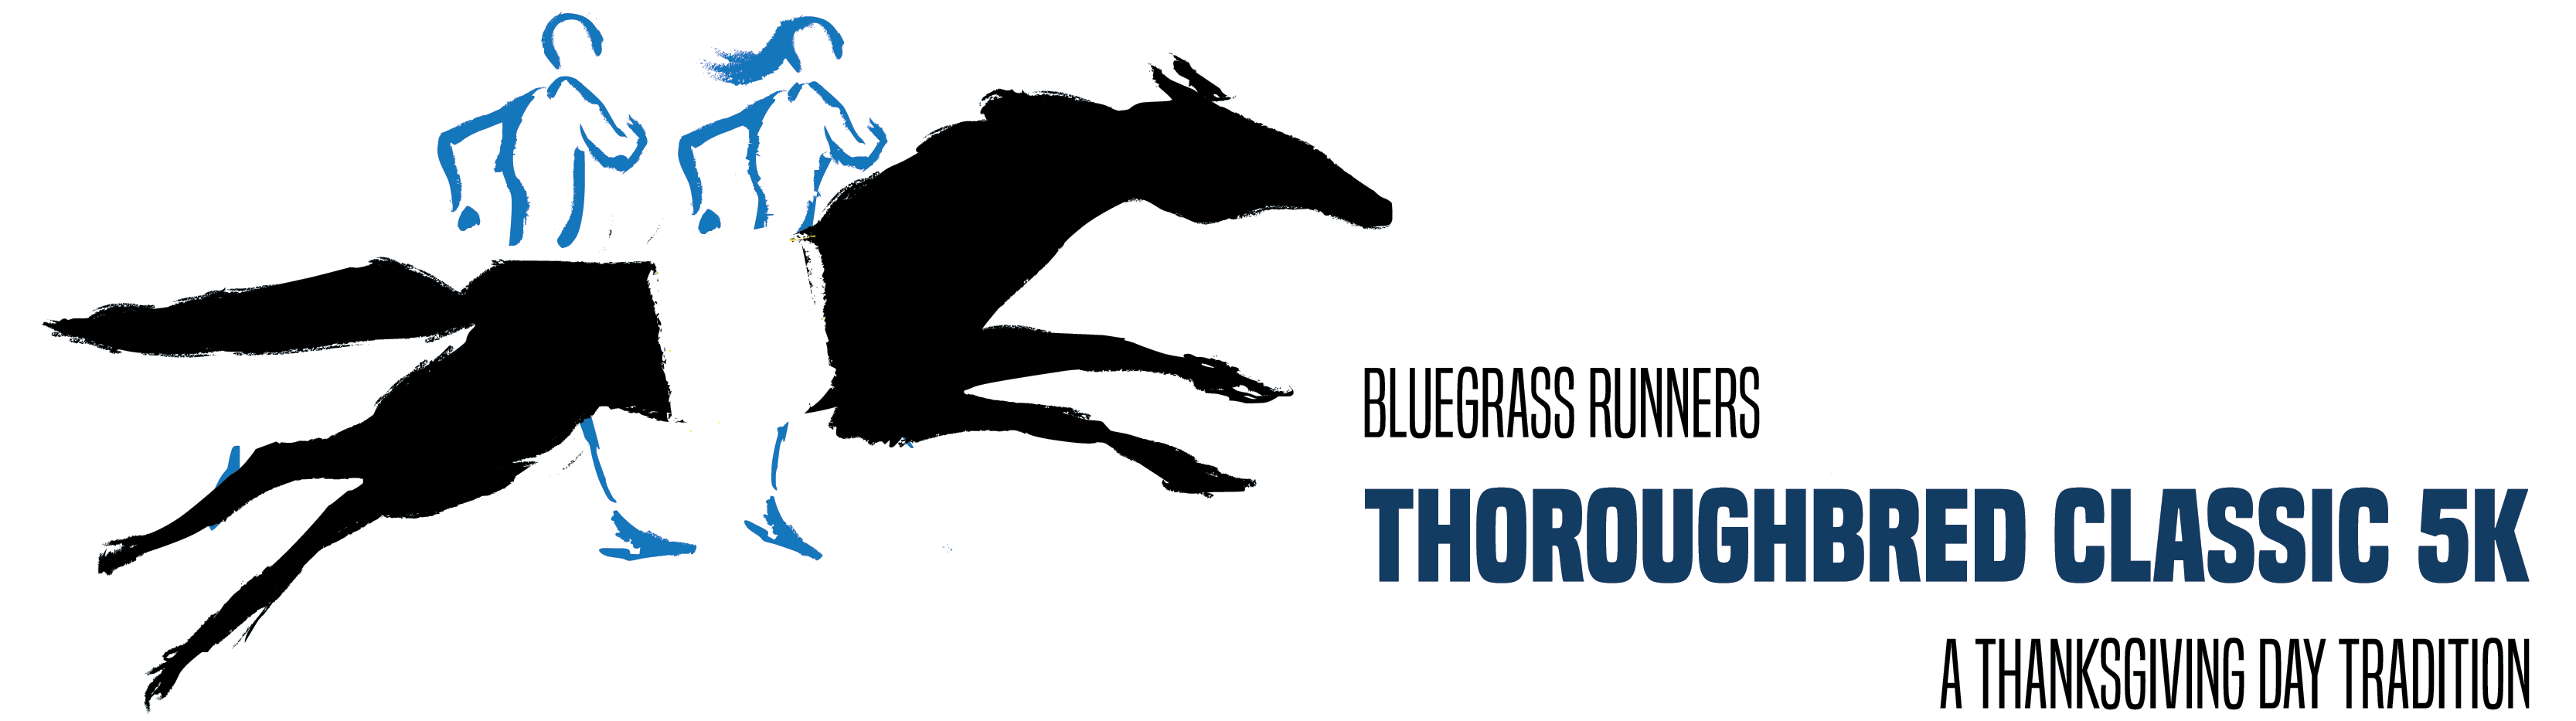 Bluegrass Runners Thoroughbred Classic 5K – Thanksgiving Day